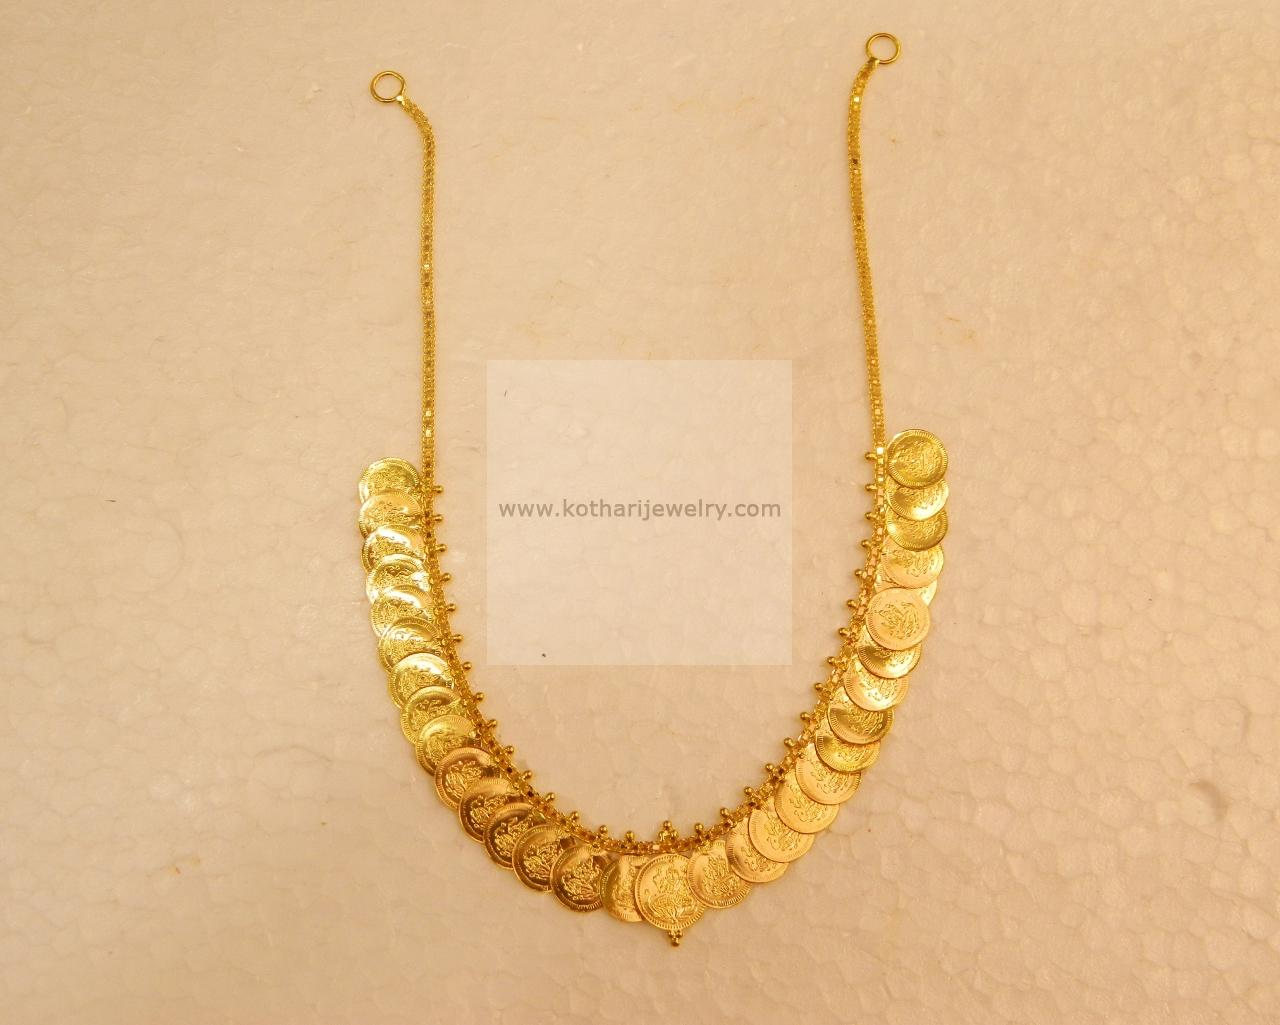 weight india item girls ethiopian earrings party for gifts jewelry light adixyn sets color women set in gold from exquisite necklace